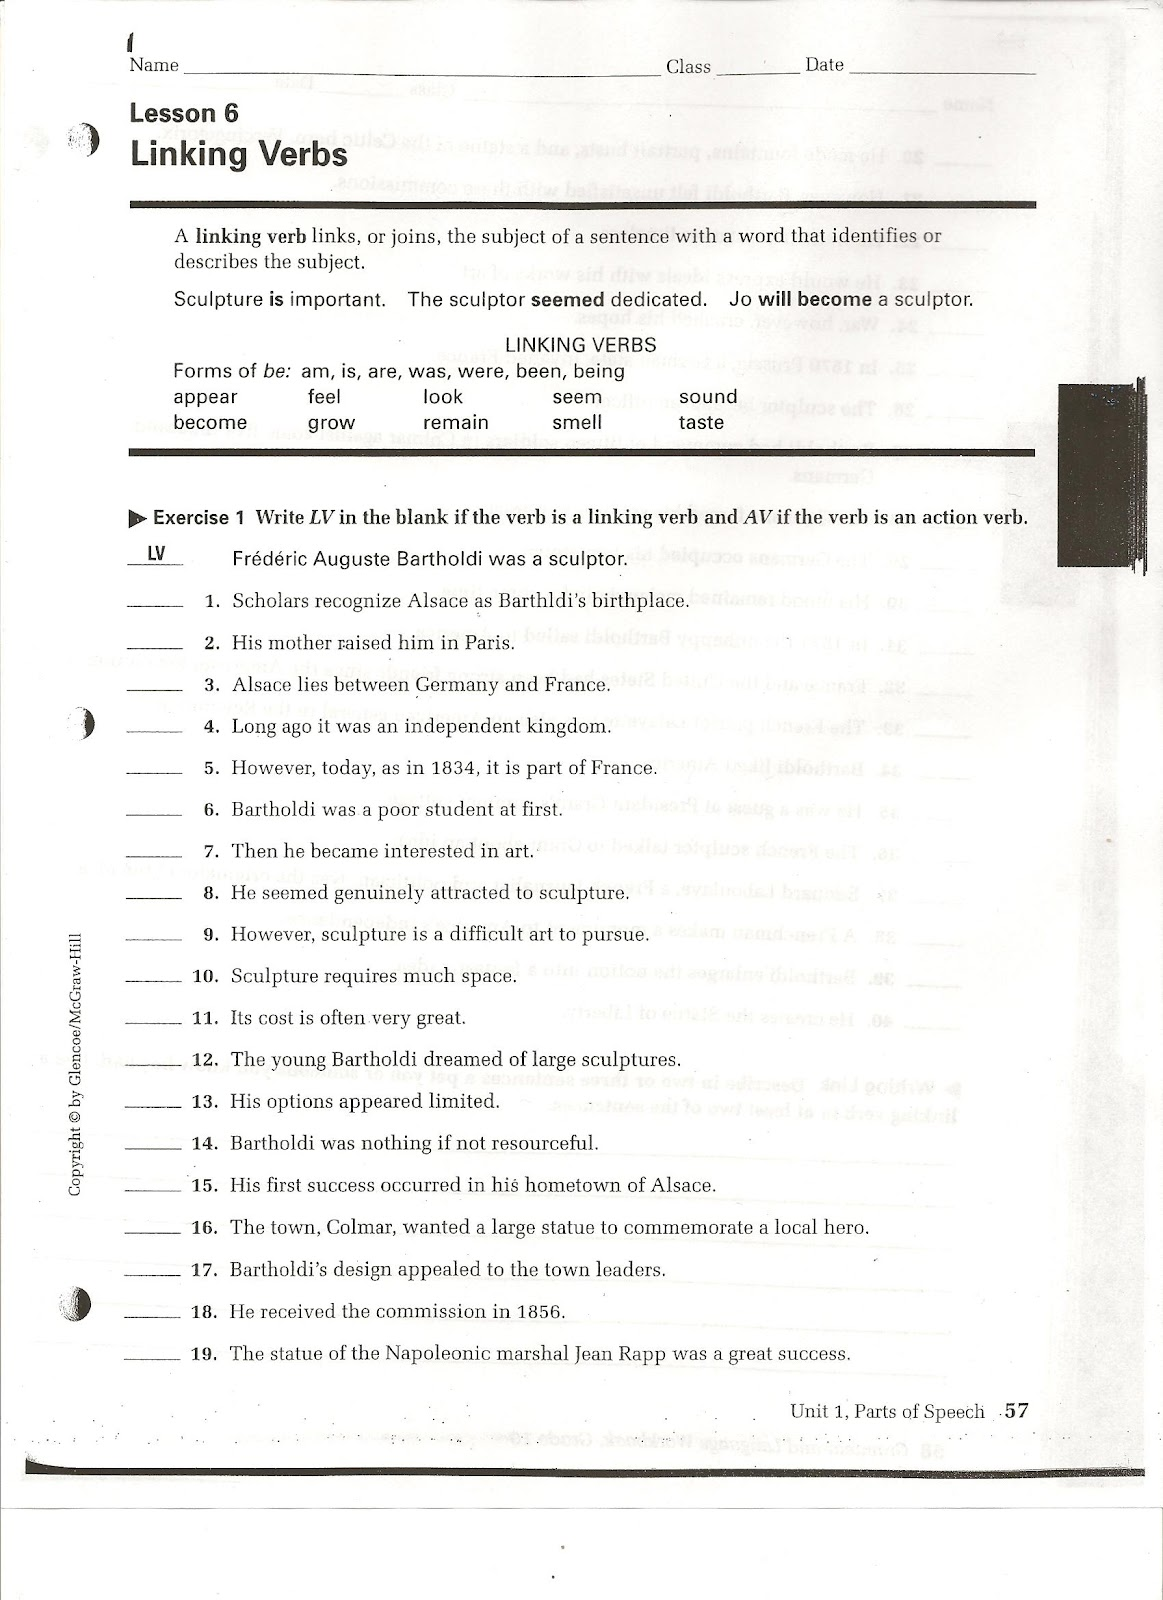 worksheet Linking Verbs Worksheets miss cardens class linking verbs worksheet workbook page 57 57